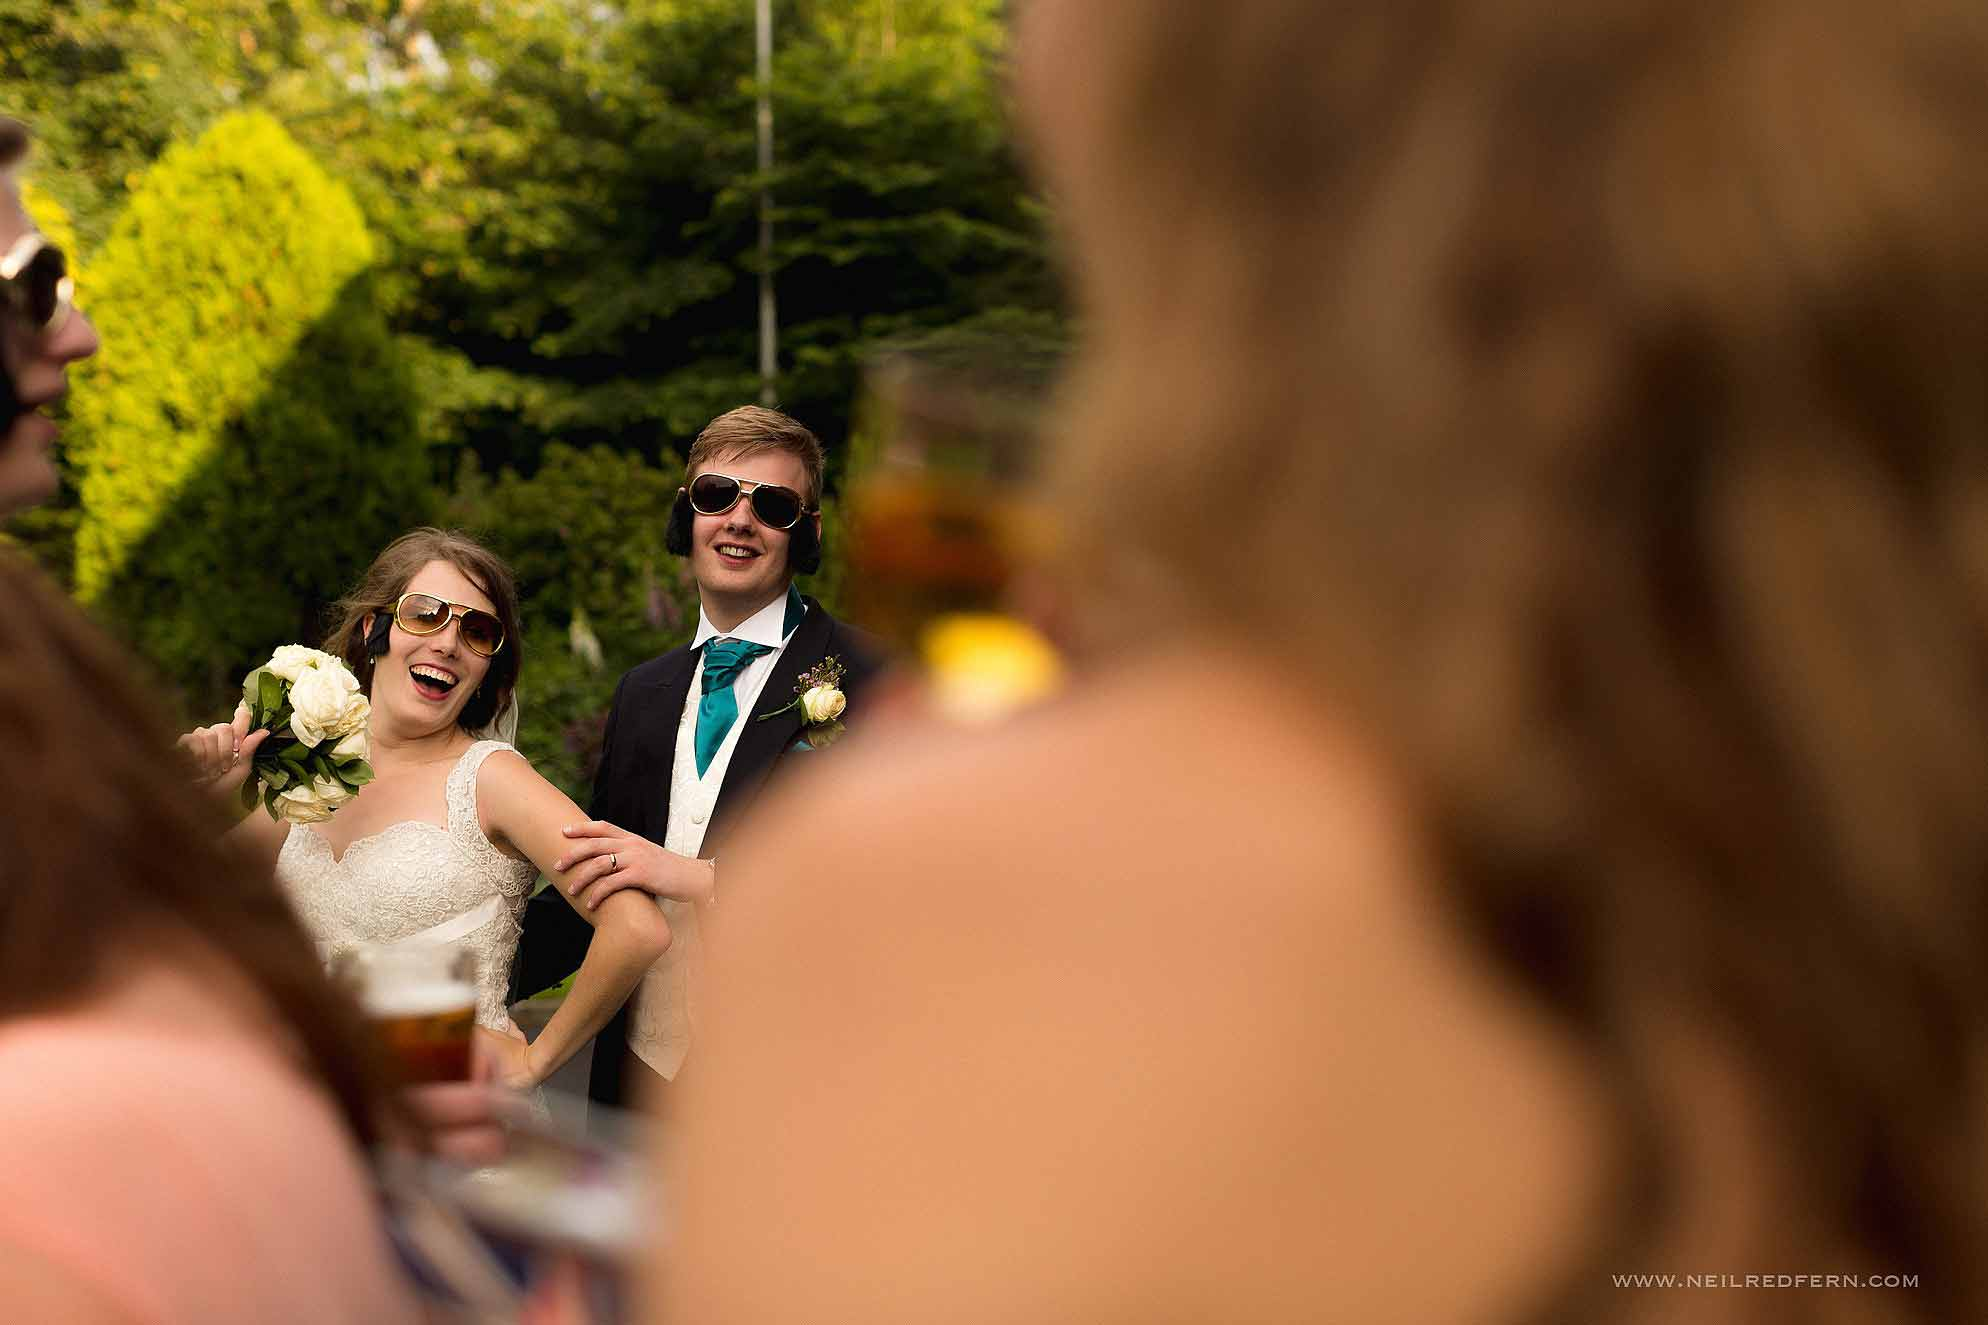 funny photo of bride and groom